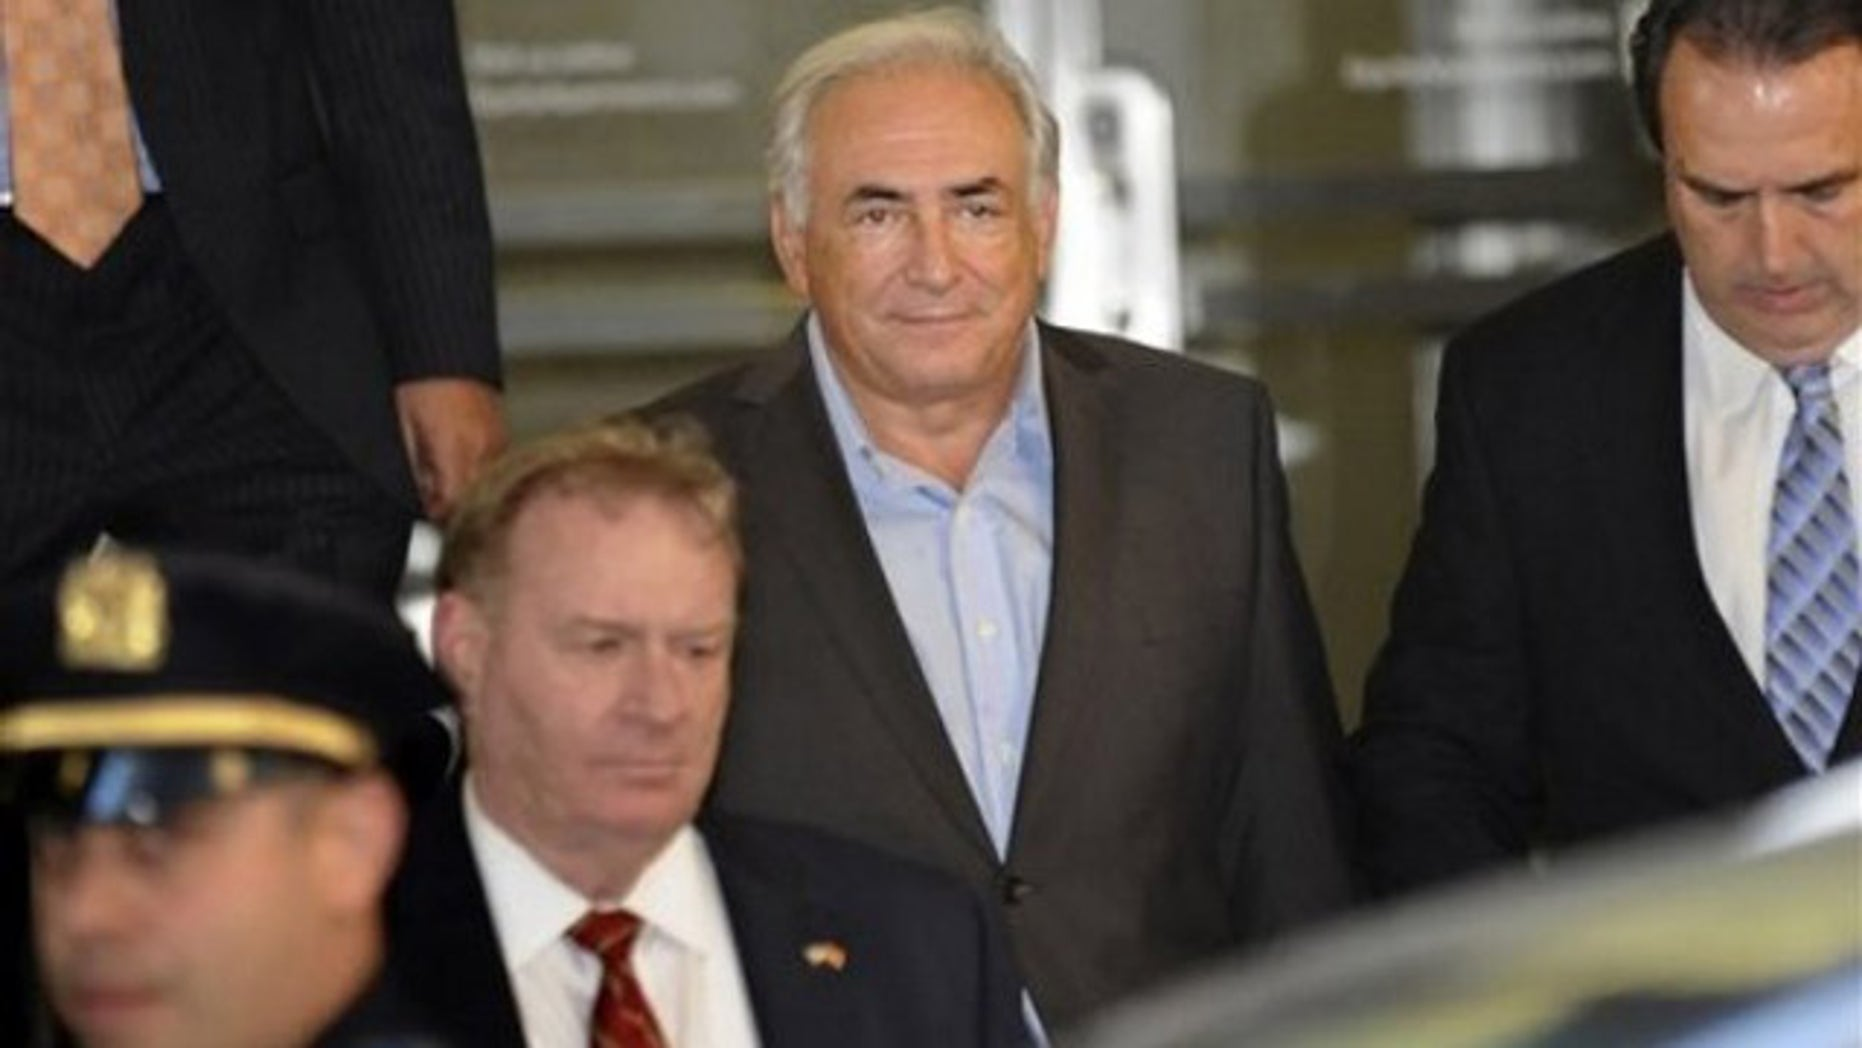 May 25: Dominique Strauss-Kahn, center, is led from 71 Broadway in Manhattan's financial district where the former International Monetary Fund leader was staying following his release on bail (AP).